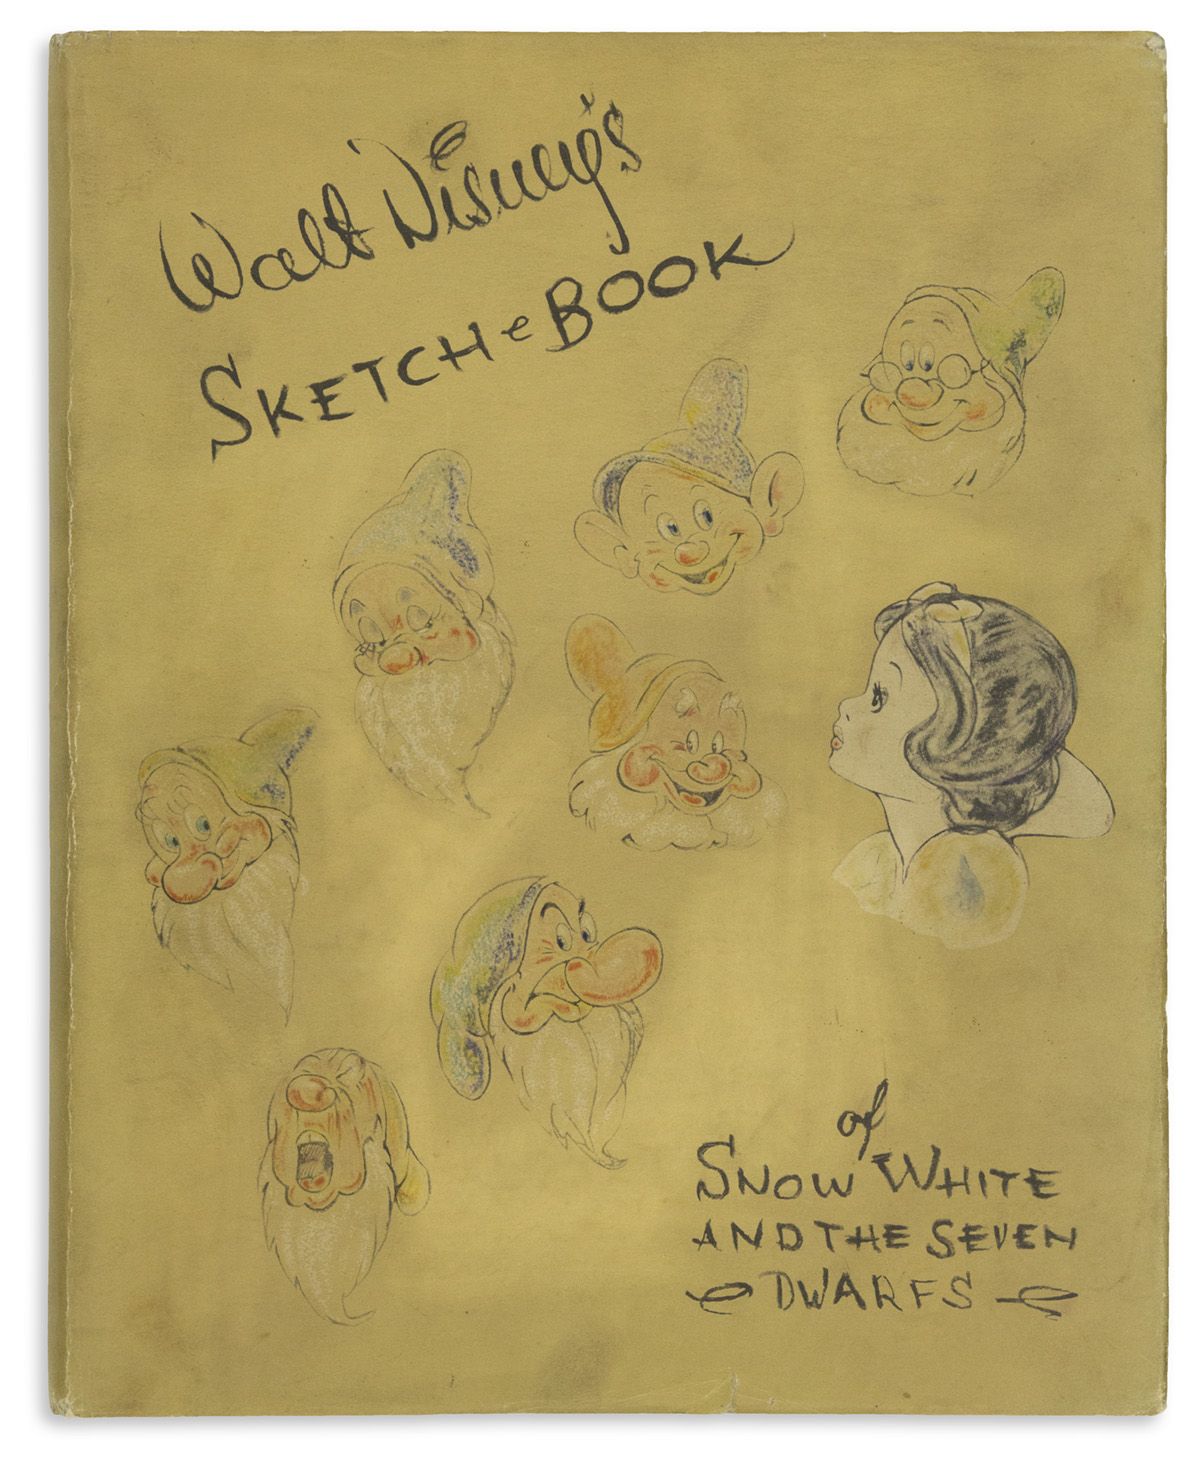 (CHILDRENS LITERATURE.) [Disney Studios.] Sketch Book [For Snow White and the Seven Dwarfs].